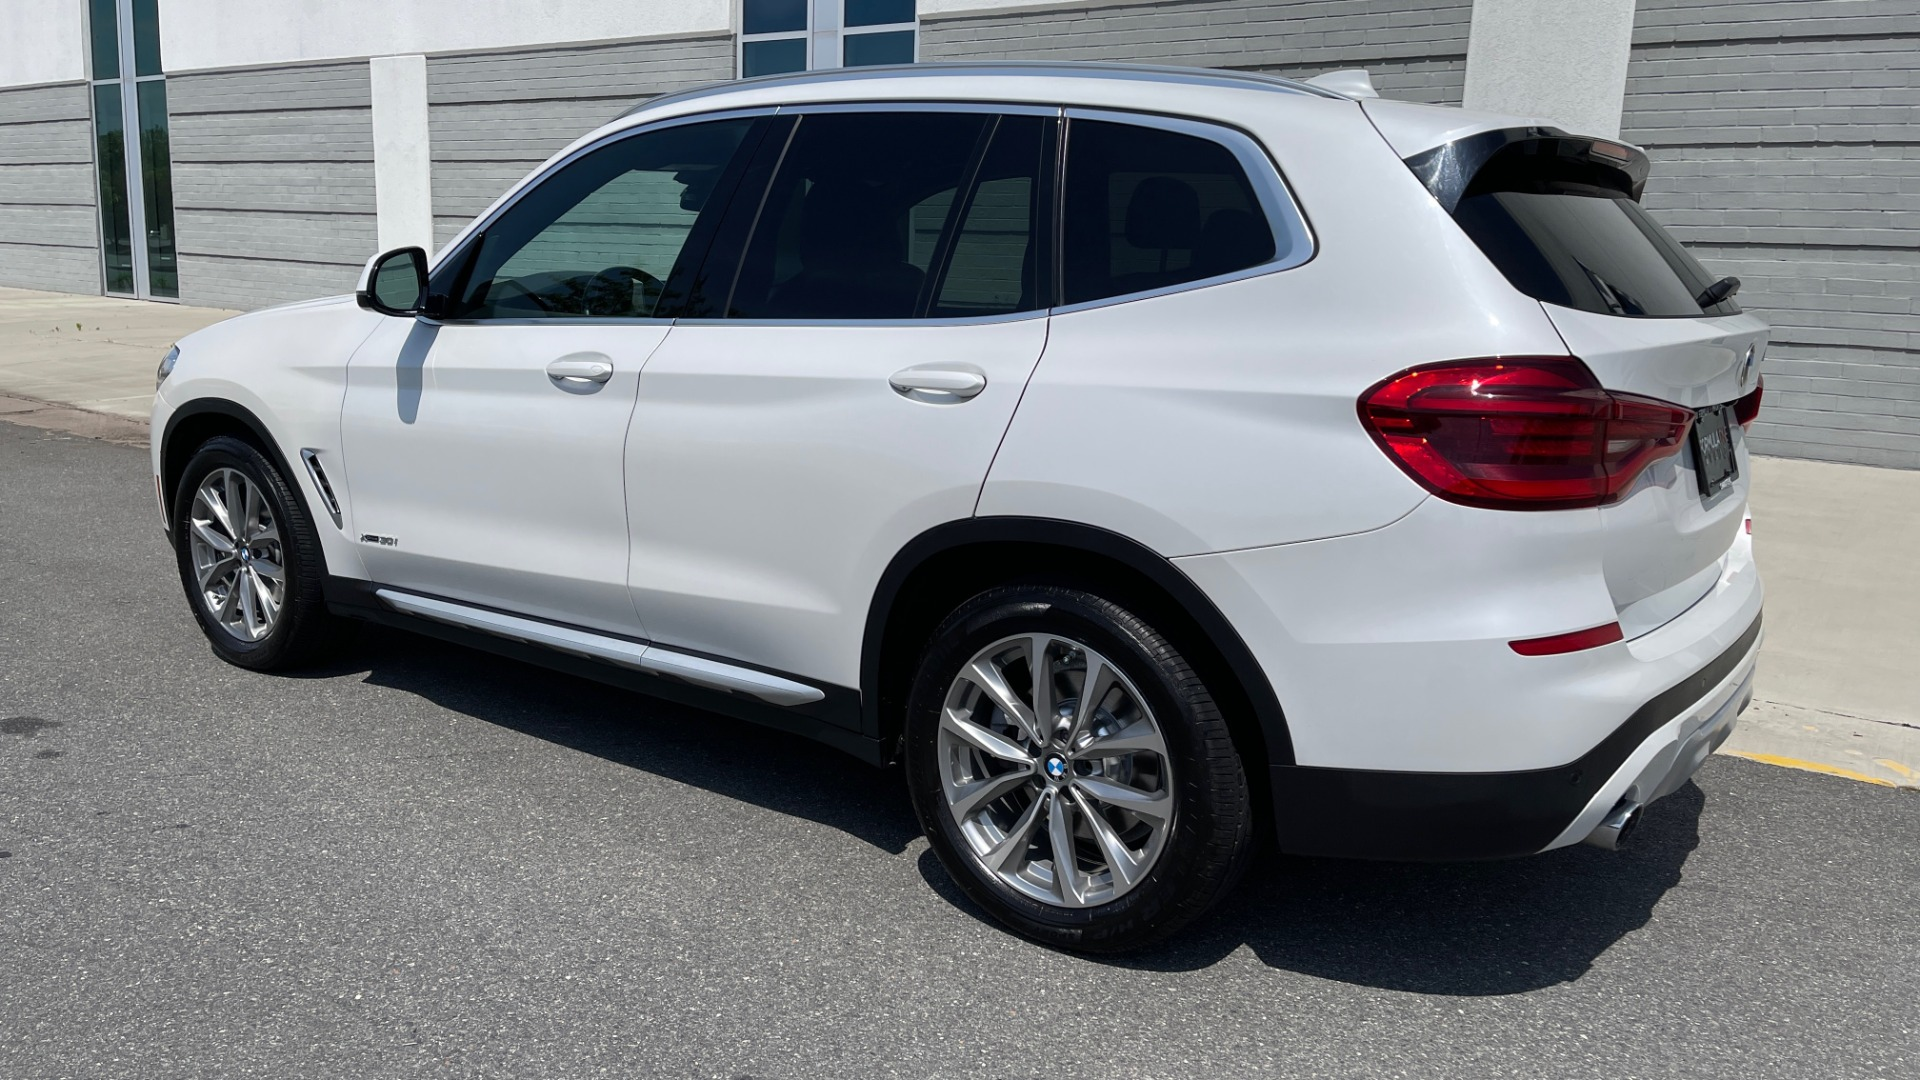 Used 2018 BMW X3 XDRIVE30I PREMIUM / NAV / DRVR ASST / CONV PKG / SUNROOF / REARVIEW for sale $32,695 at Formula Imports in Charlotte NC 28227 6